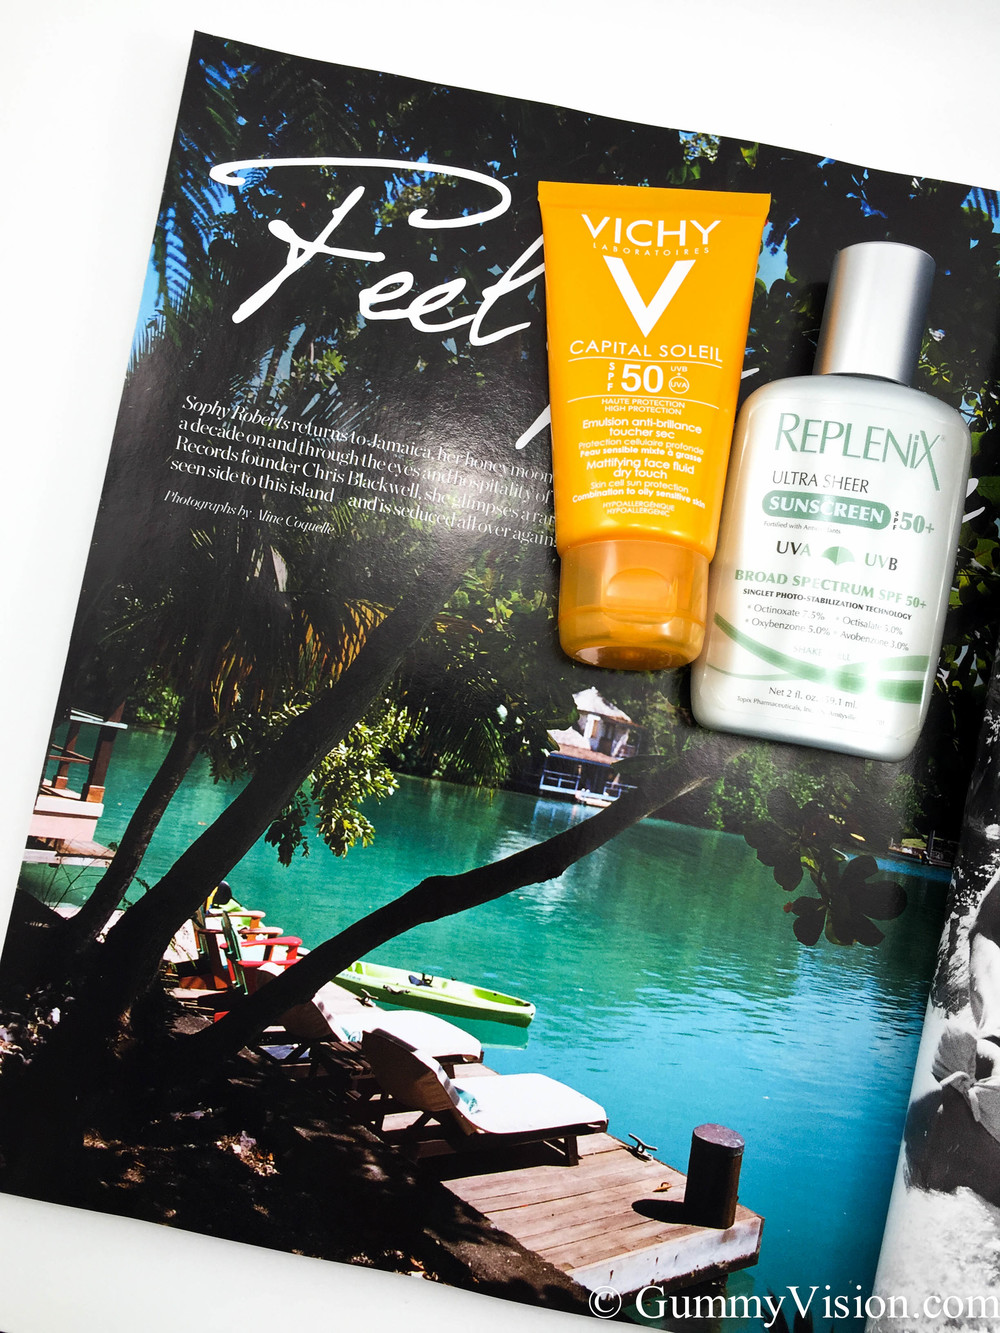 Vichy Capital Soleil Mattifying Face Fluid Dry Touch SPF50 (European version) & Replenix Ultra Sheer Sunscreen SPF50+. Magazine is Net-A-Porter Fall 2014.